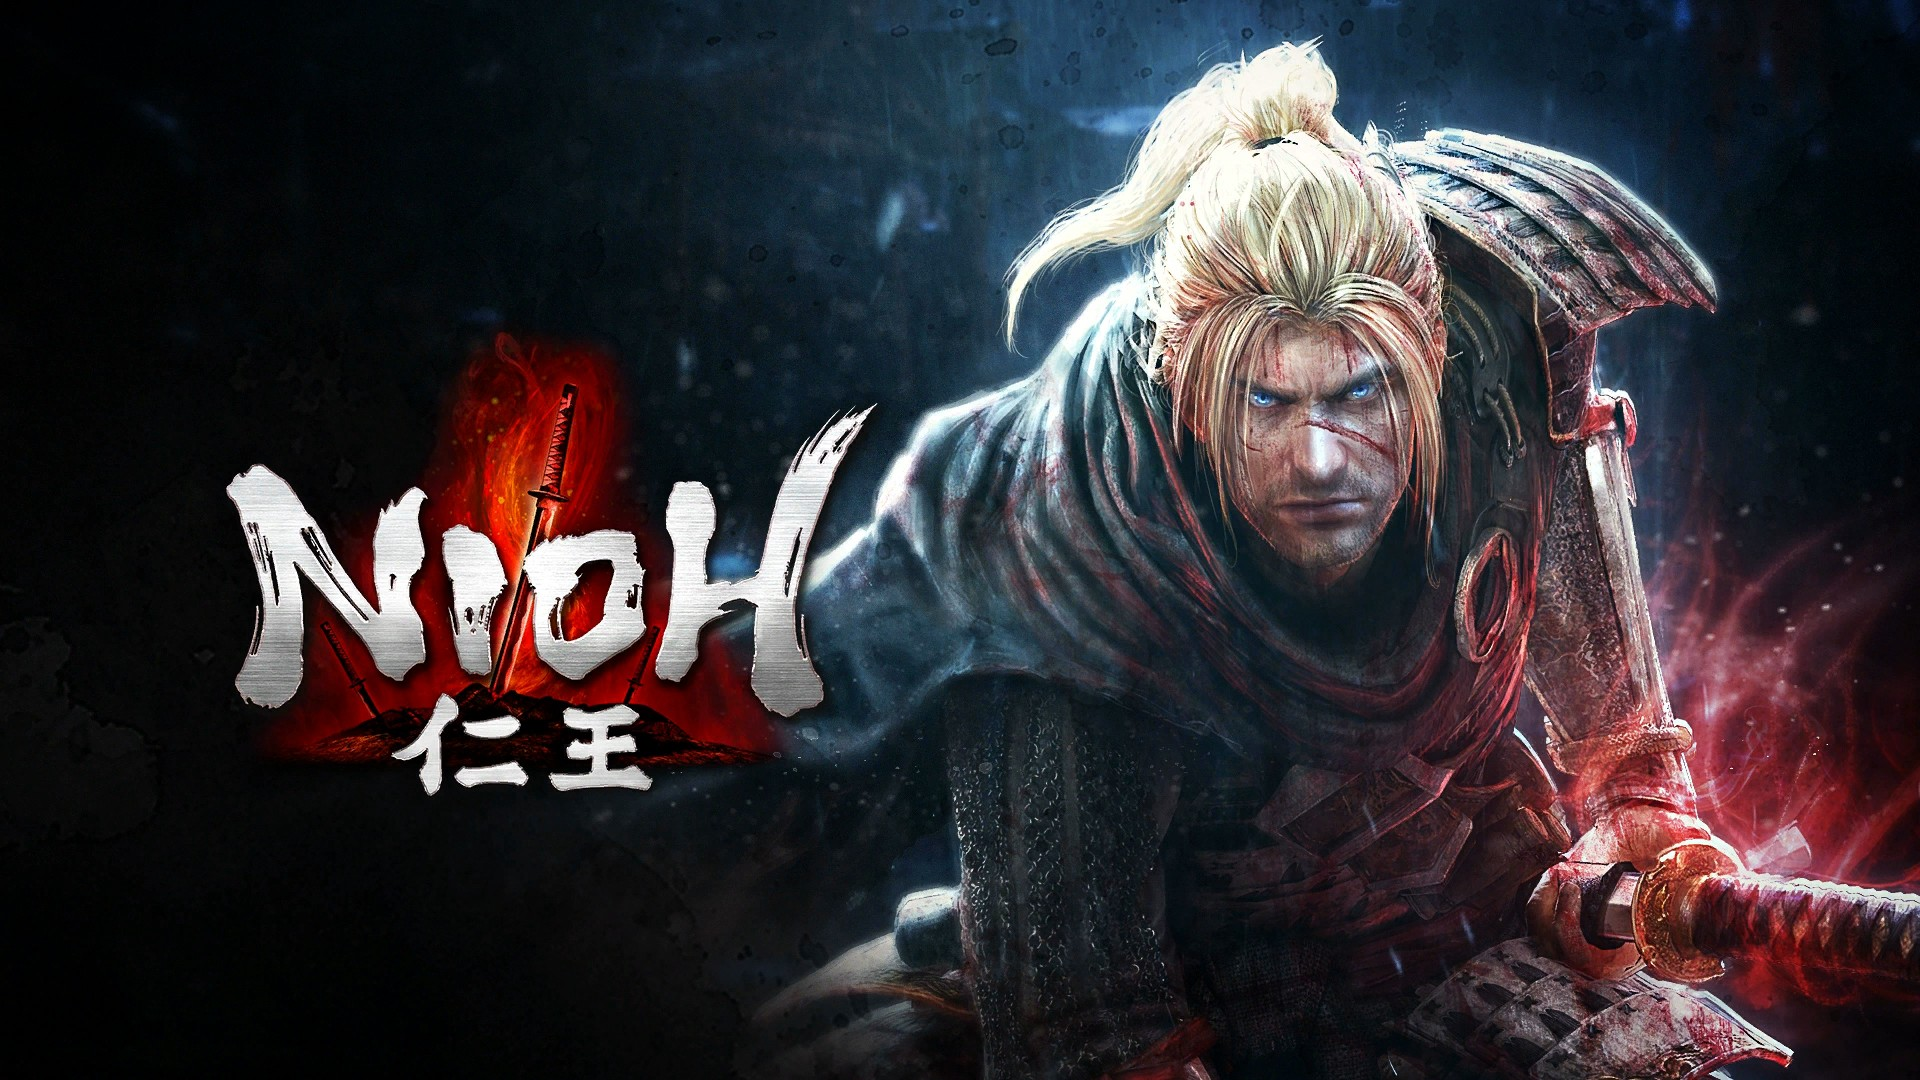 Review game Nioh